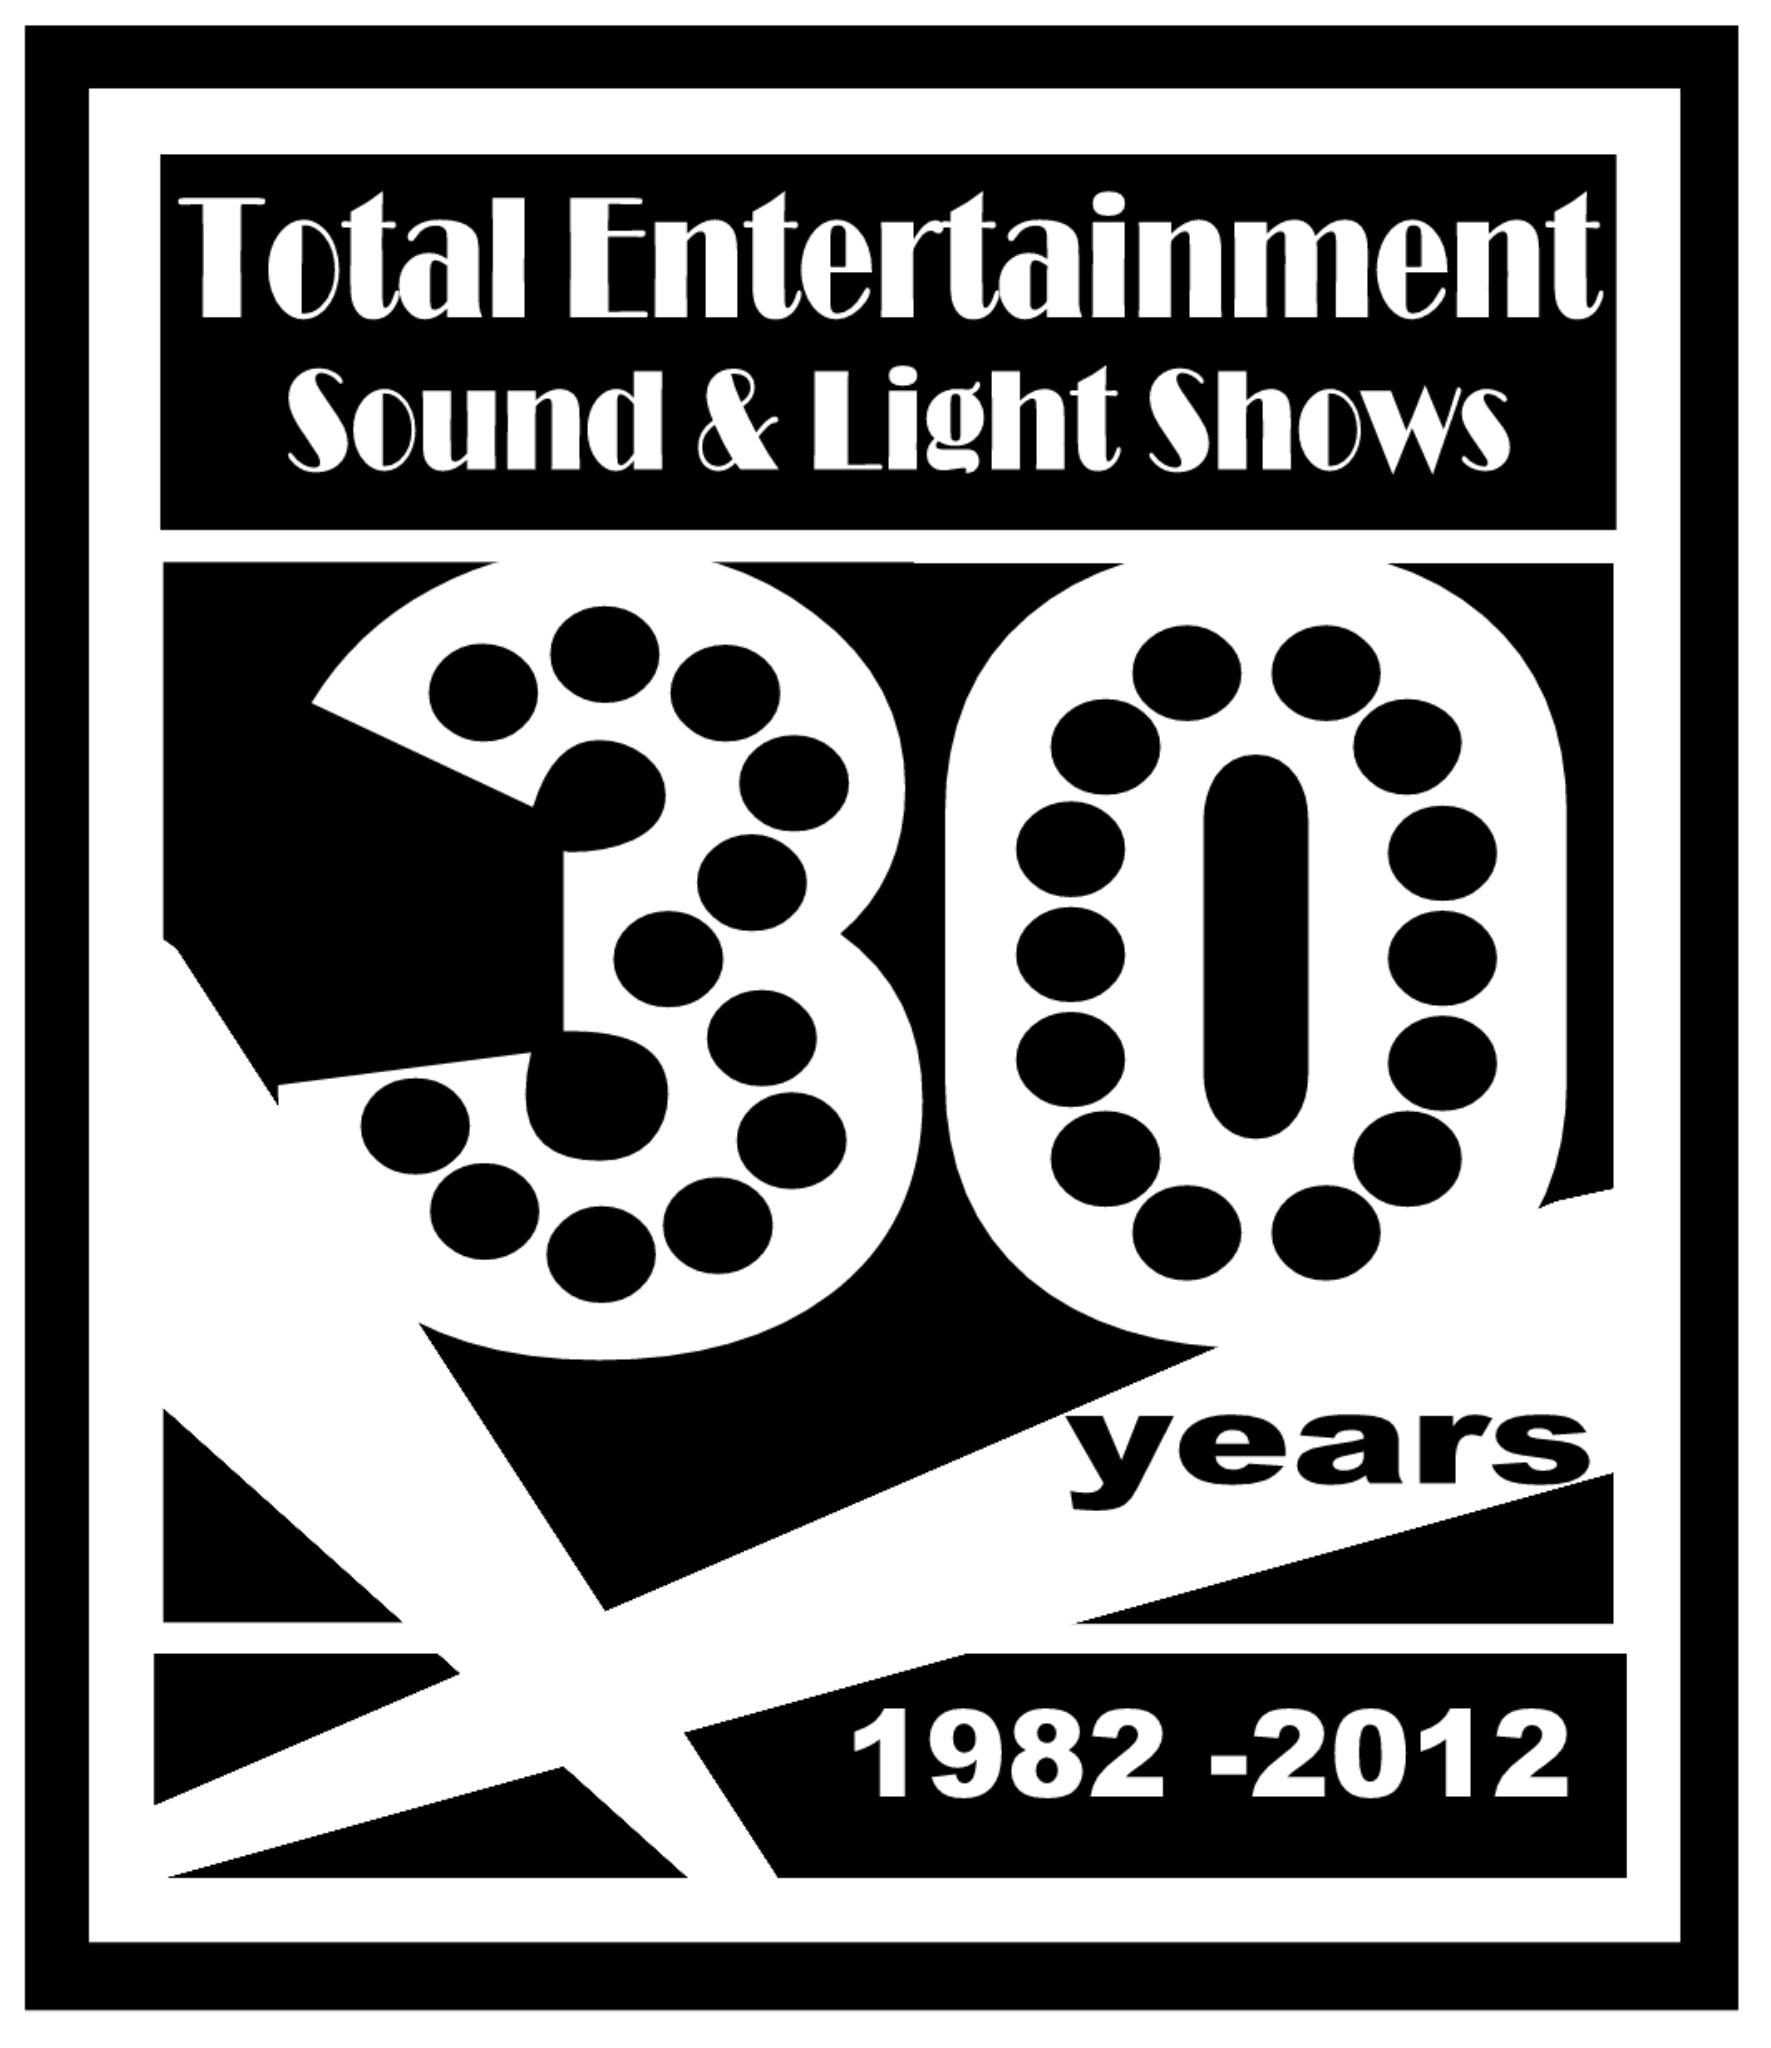 Total Entertainment 30 Years in the Bar / Bat Mitzvah DJ Scene!